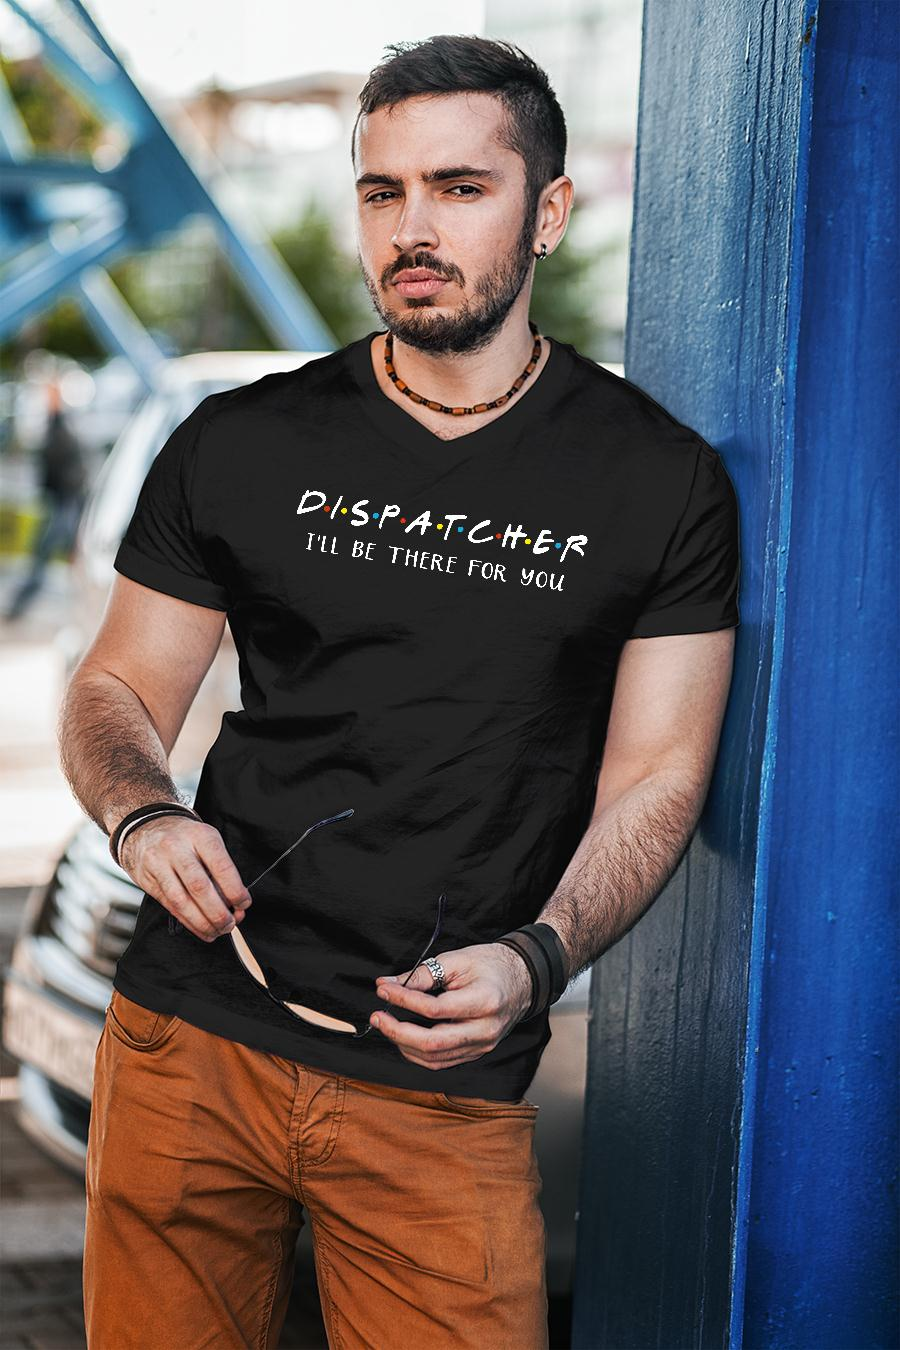 Dispatcher i'll be there for you shirt unisex